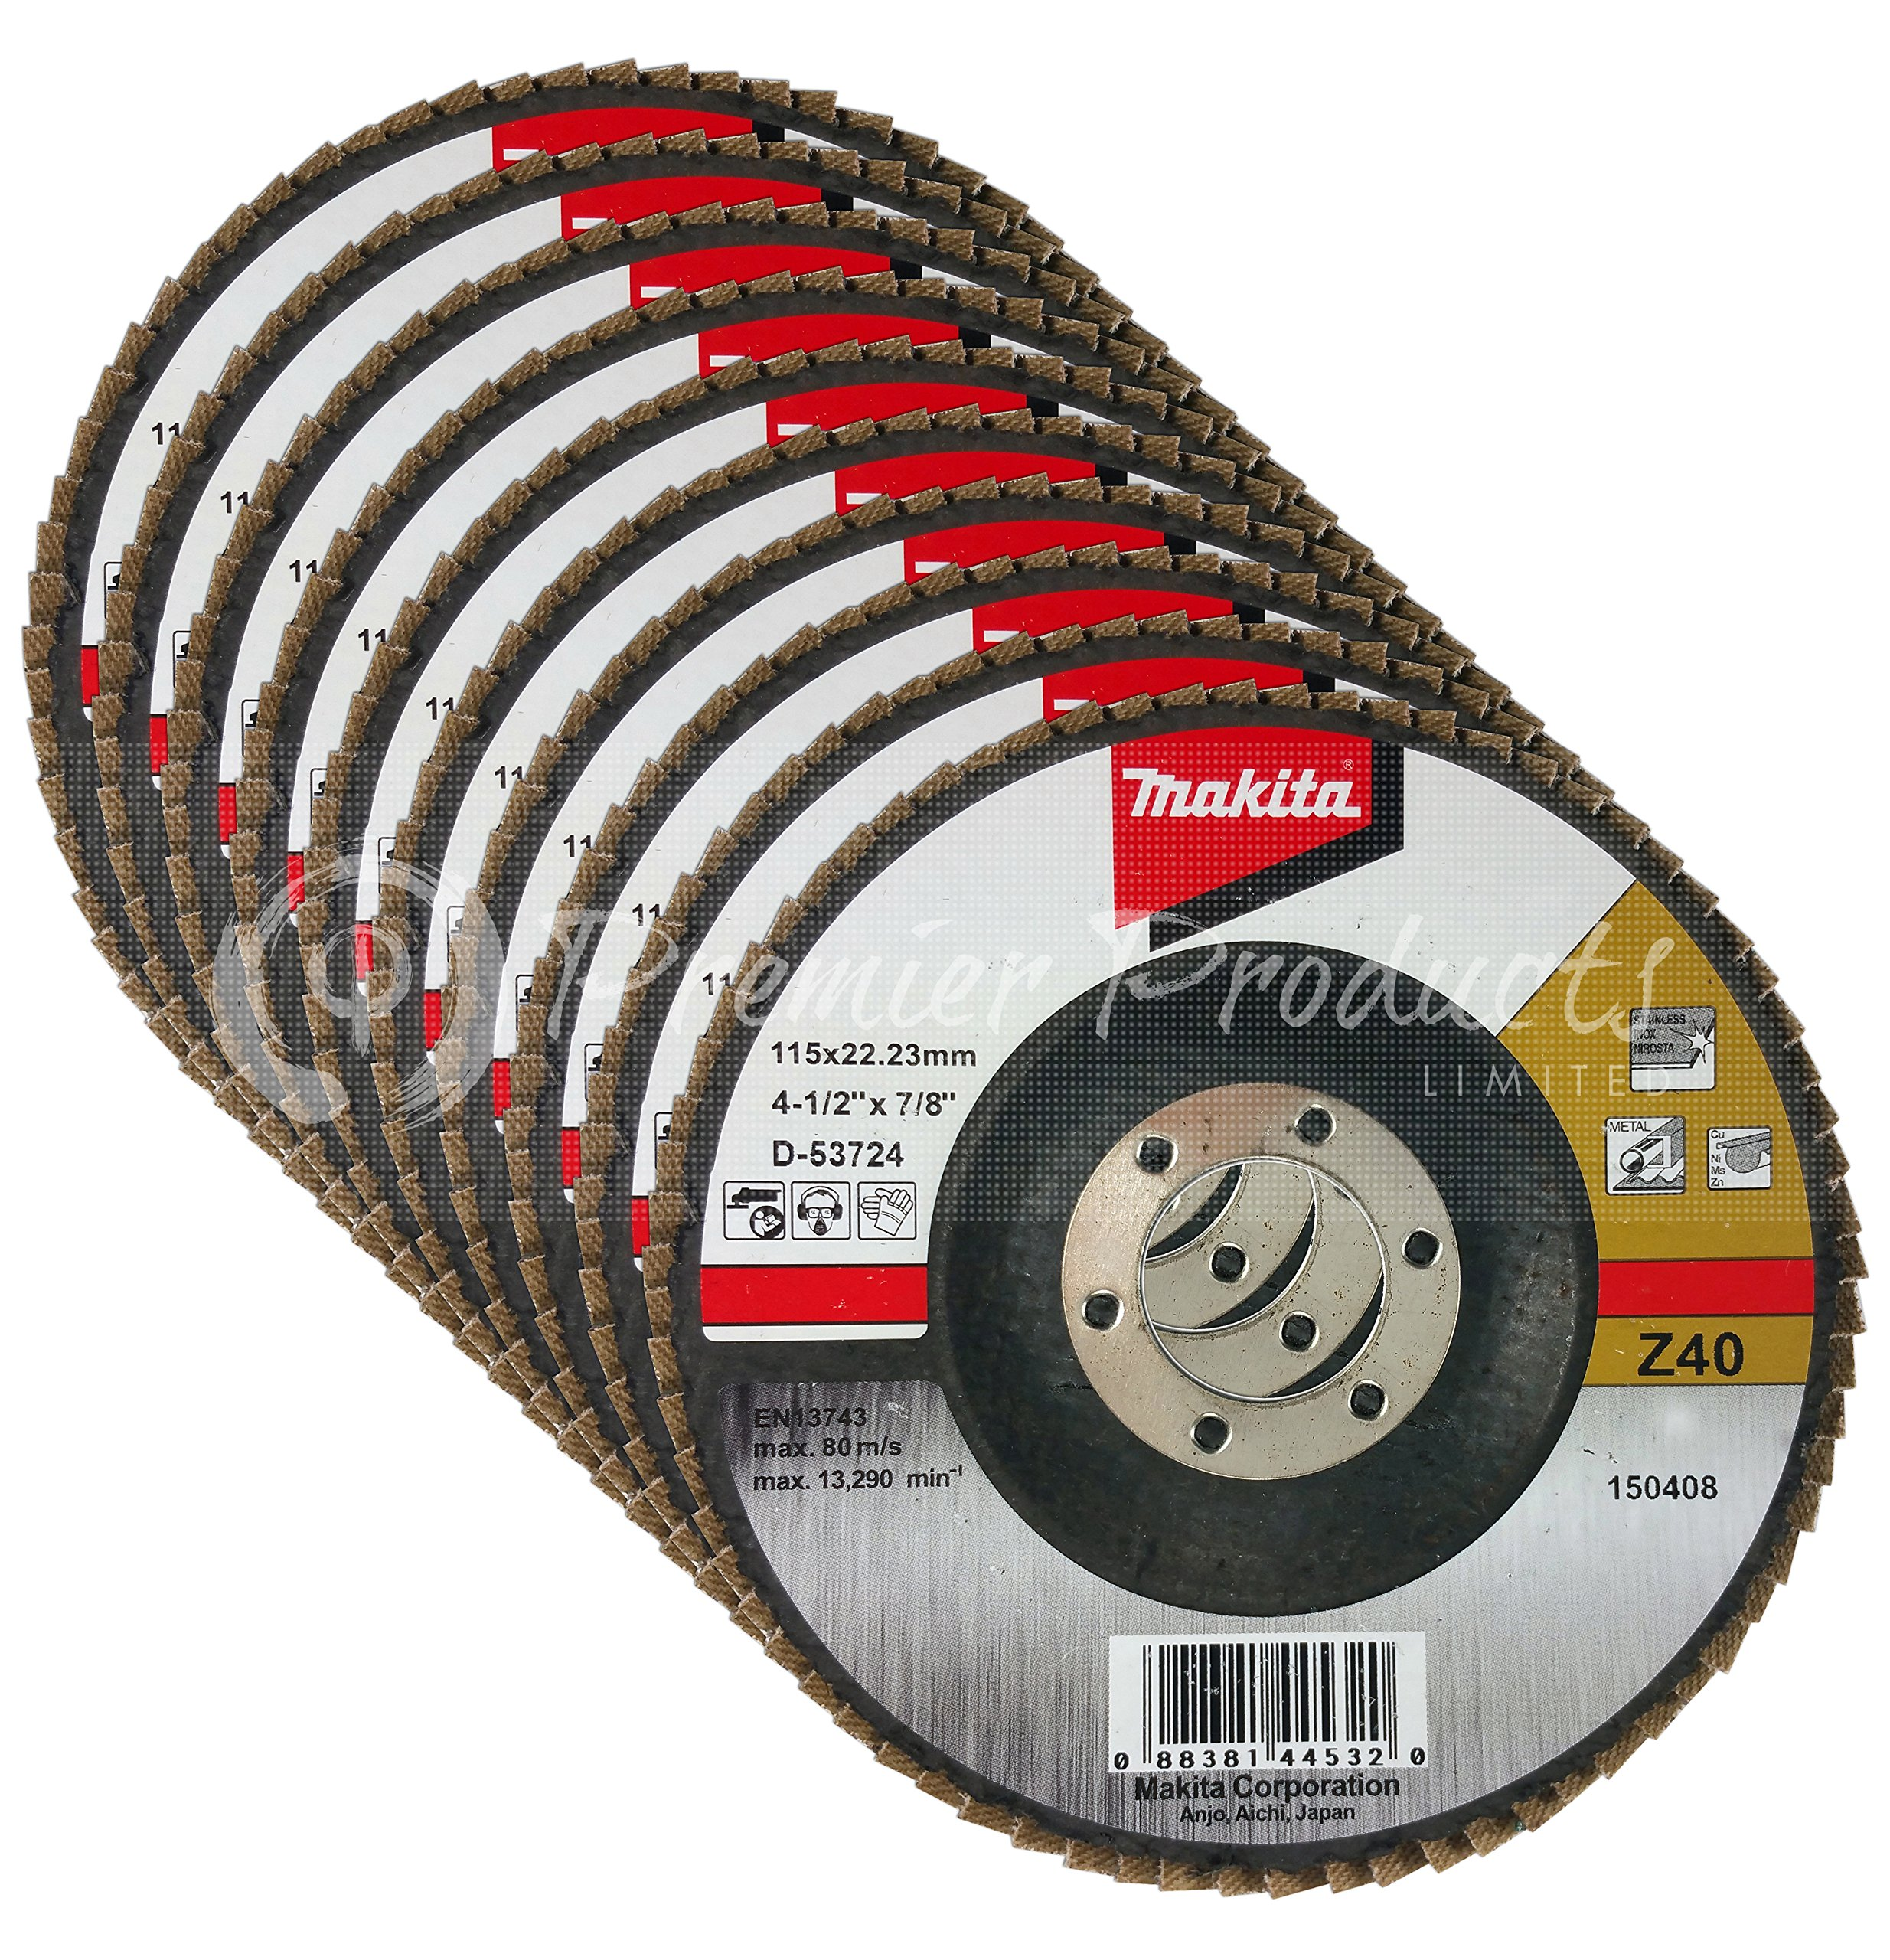 Makita 10 Pack - 40 Grit Flap Disc For Grinders - Aggressive Conditioning For Metal, Stainless Steel & Non-Ferrous - 4-1/2'' x 7/8-Inch | Z40 Angled